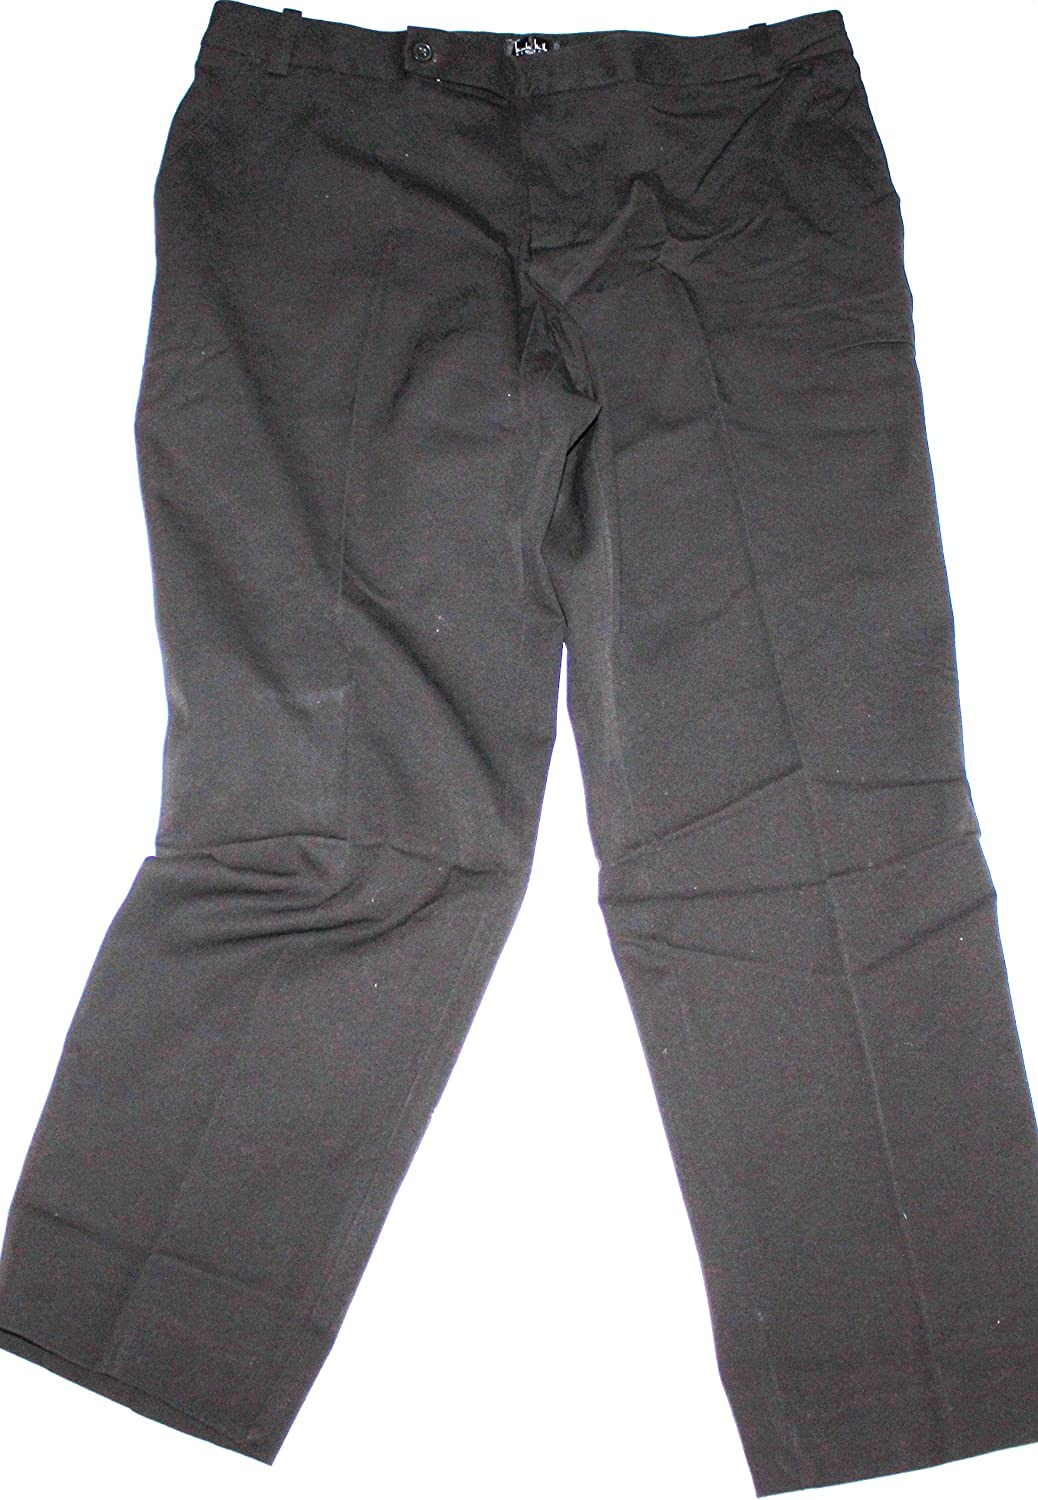 Nicole Miller Women's Size 16 Black Cropped Ankle Pants with 28 Inch Inseam